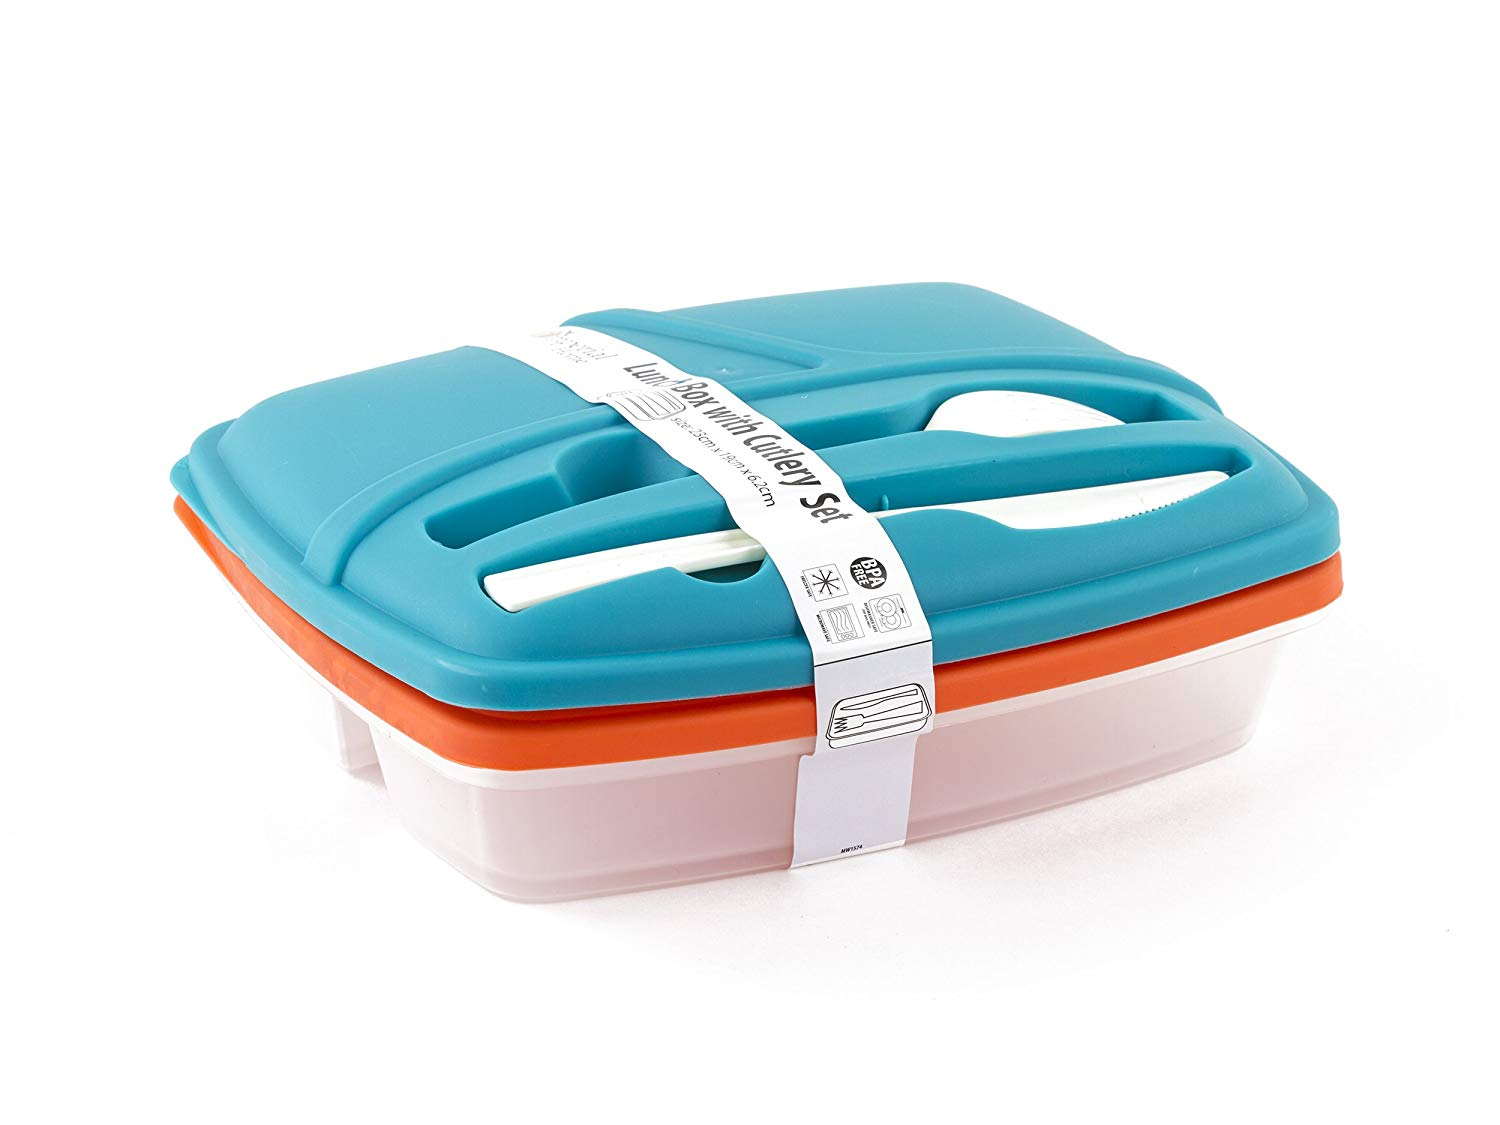 Plastic Bento Lunch Box - Food Storage Containers with Cutlery Set